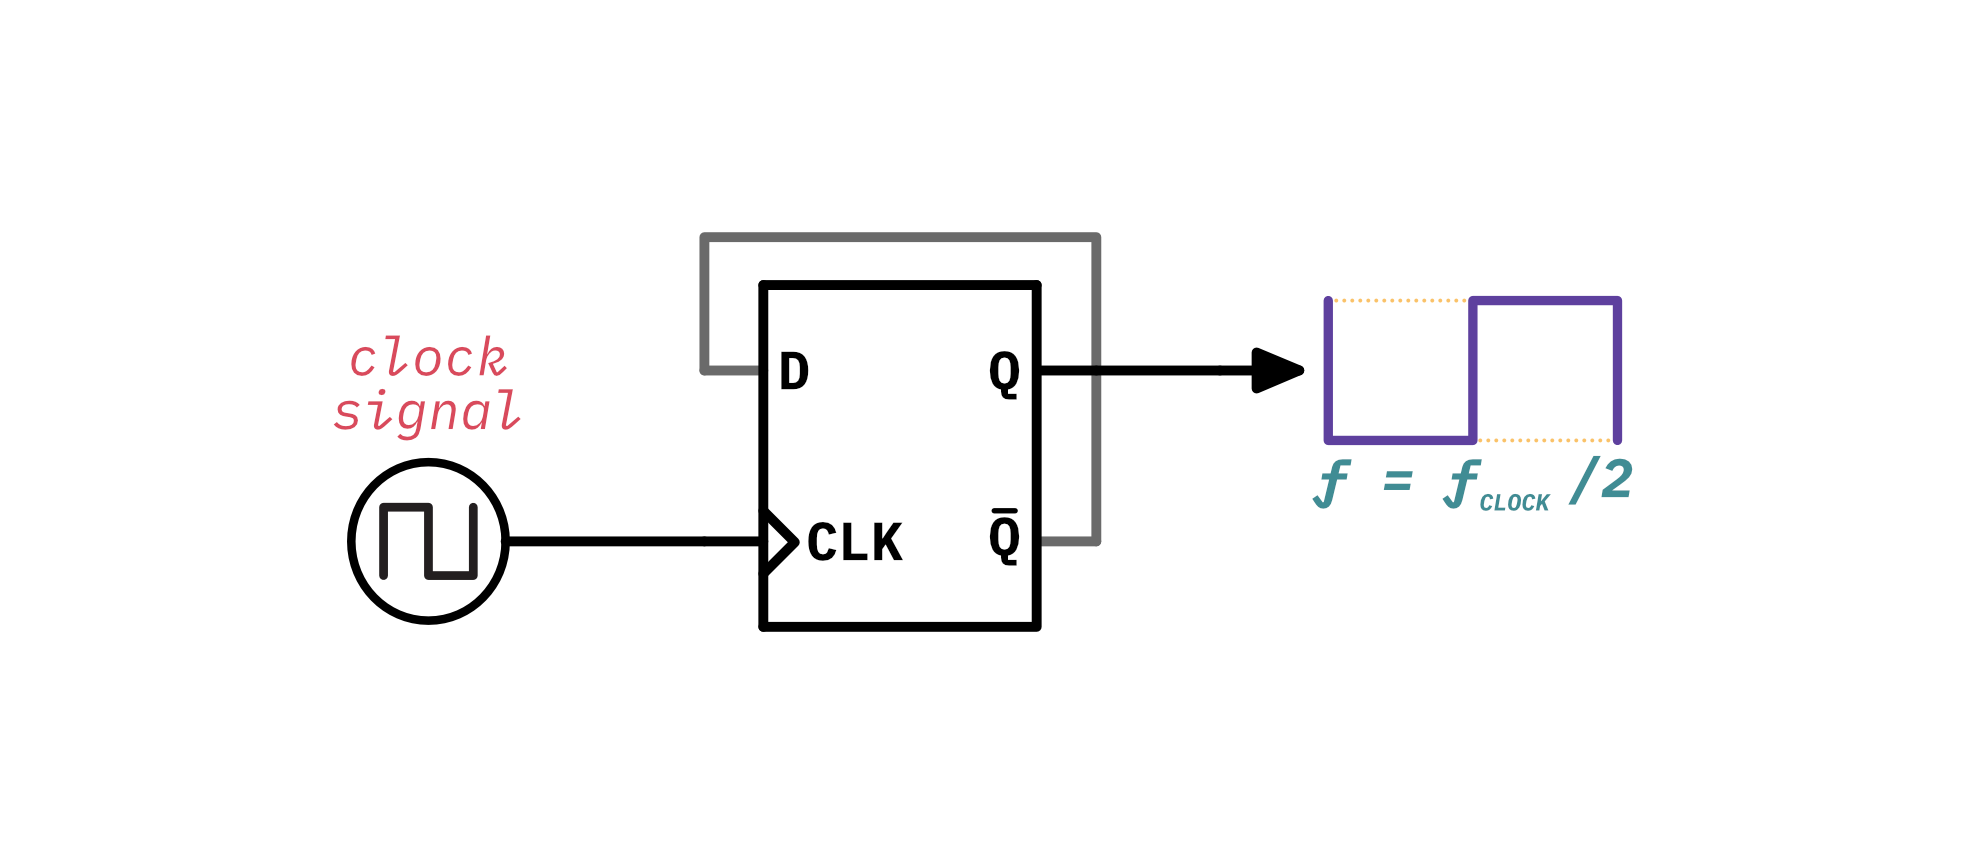 The schematic for the sub waveform using a divide-by-two circuit